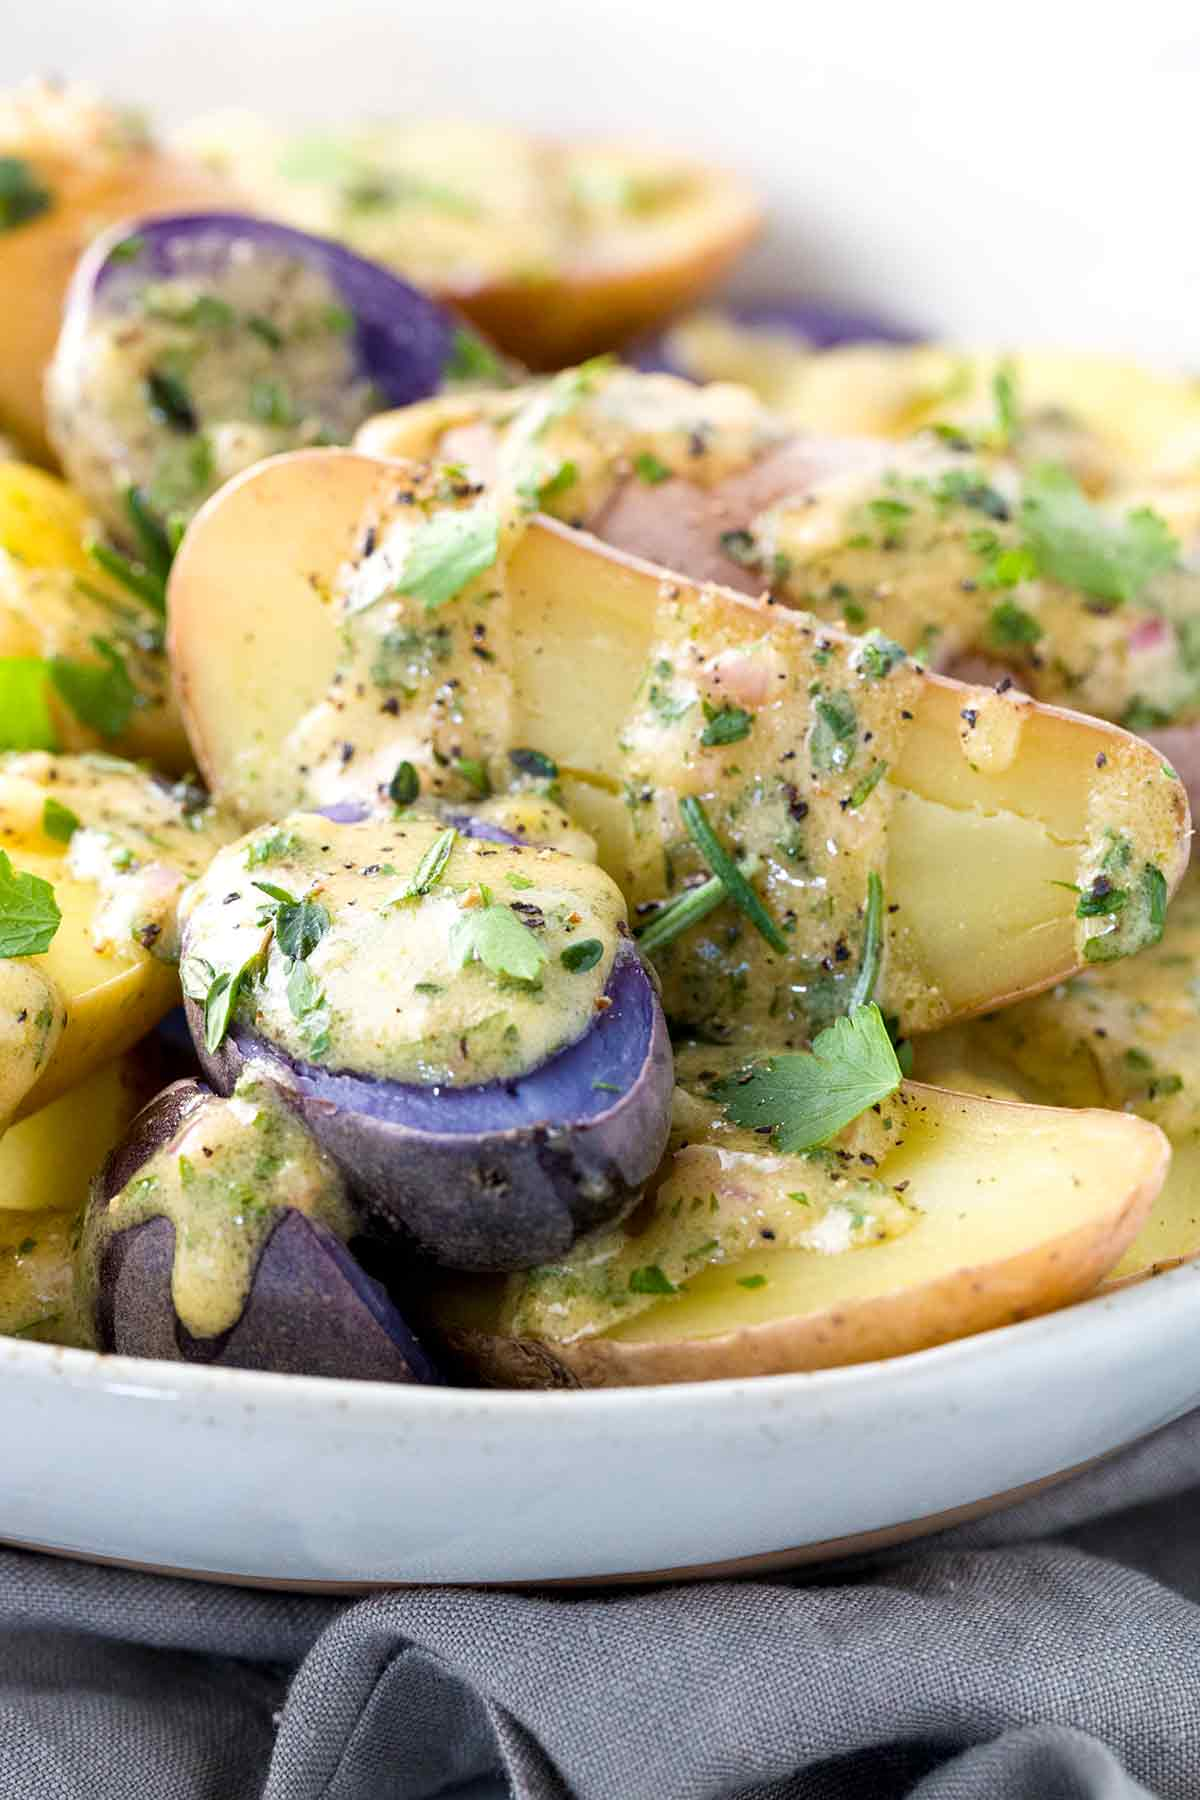 ... and gold fingerling potatoes with homemade herb vinaigrette dressing